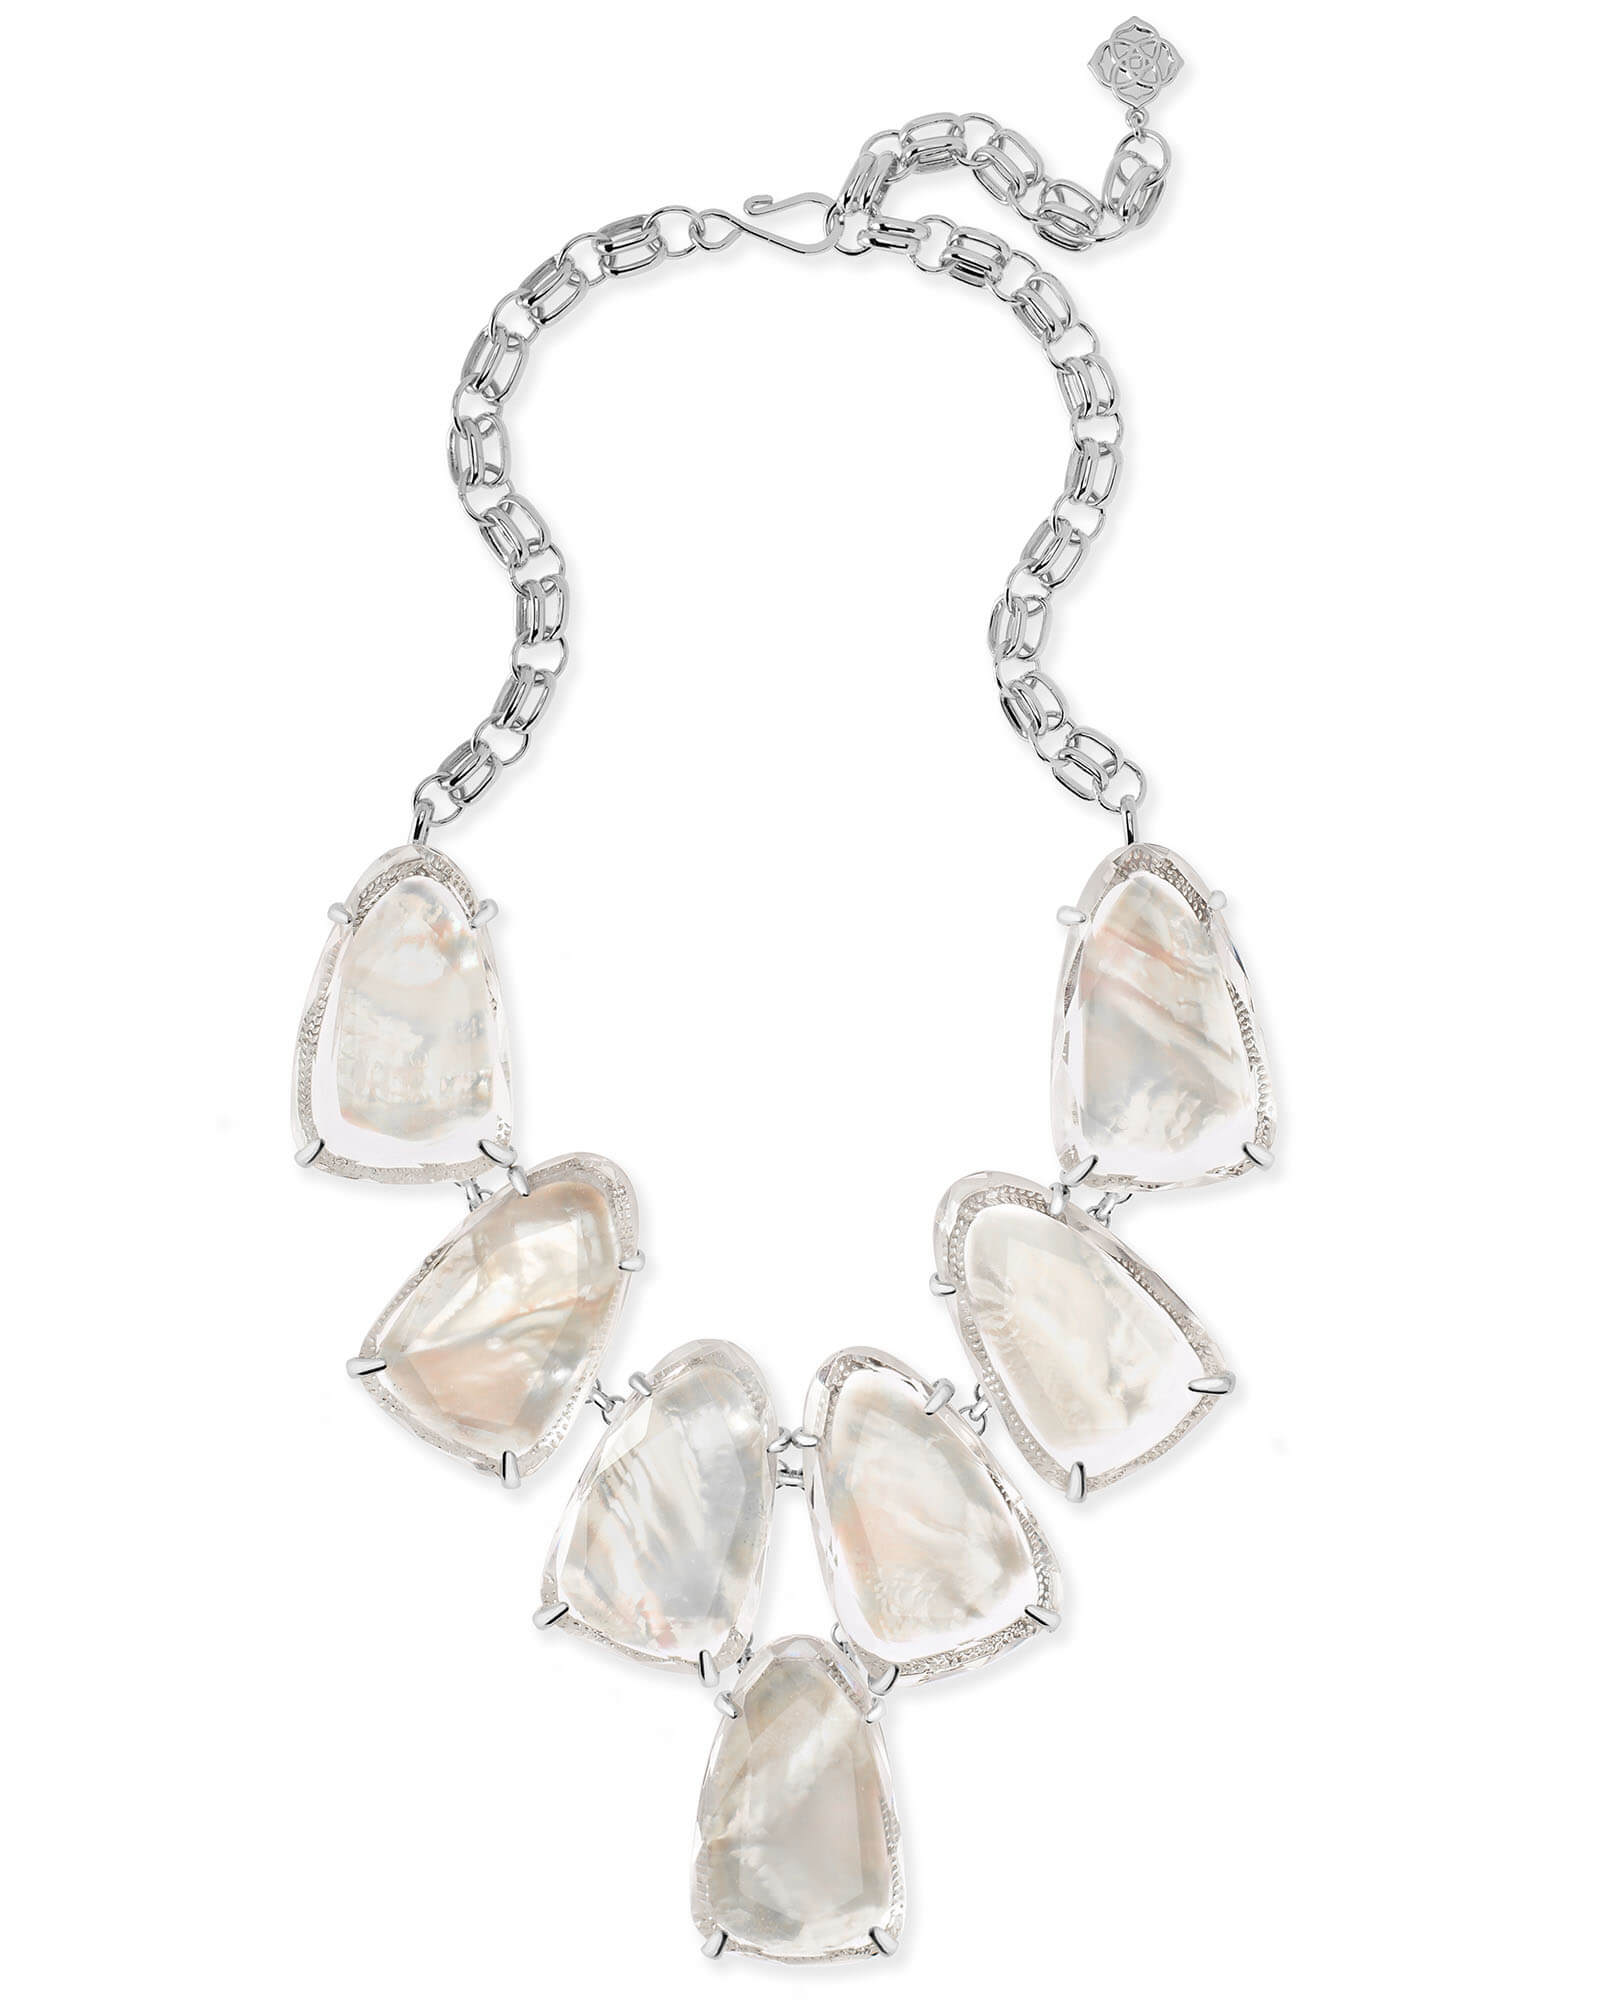 Harlow Silver Statement Necklace in Suspended Ivory Mother of Pearl